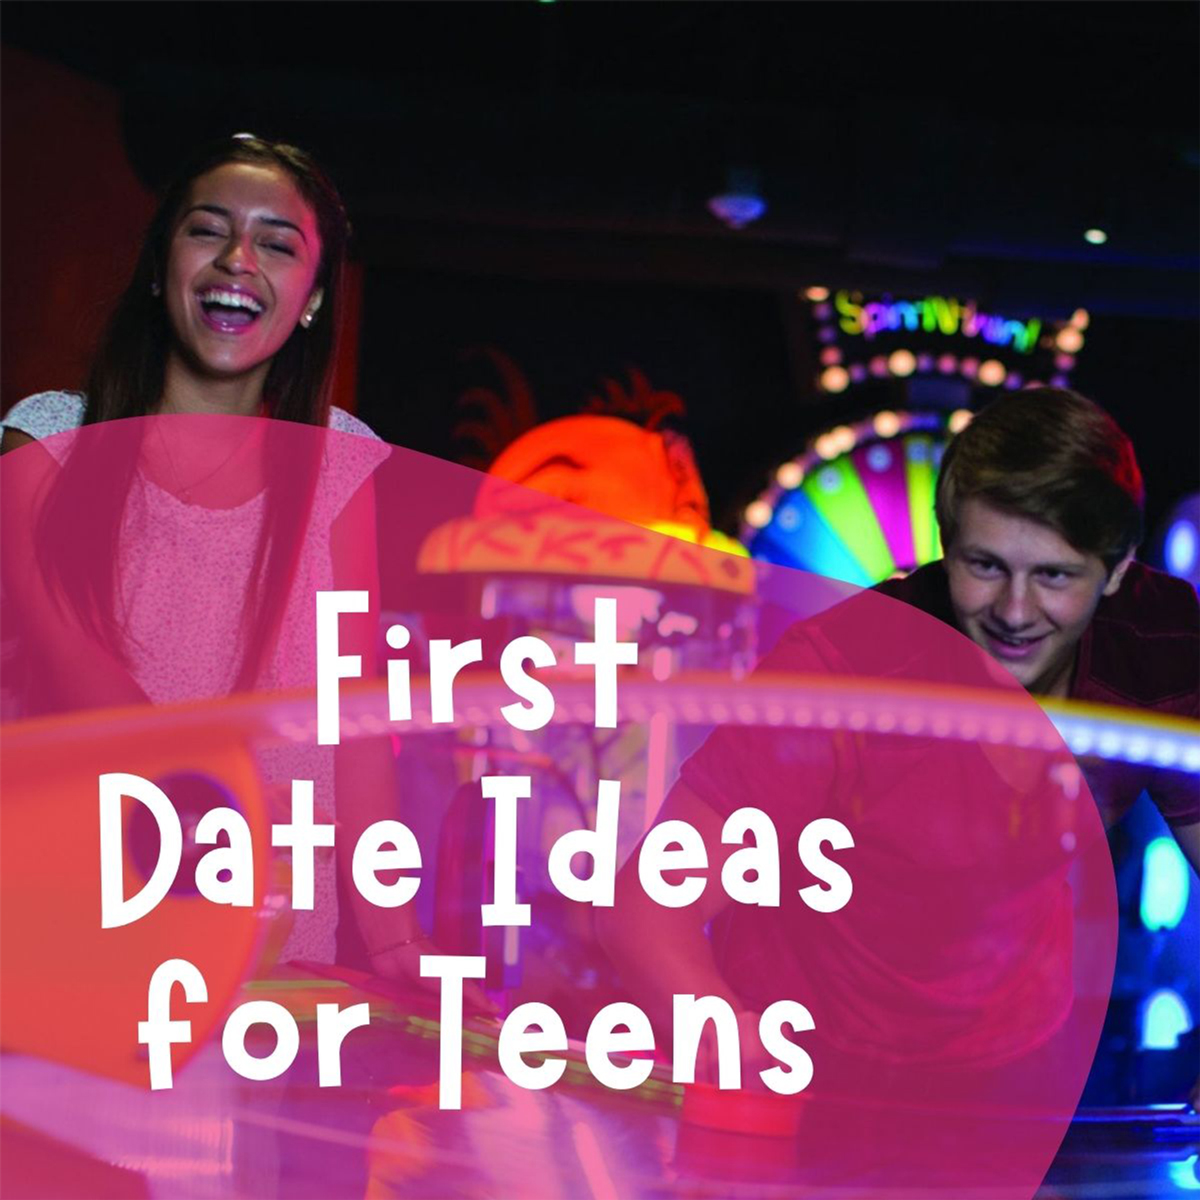 First Date Ideas for Teens